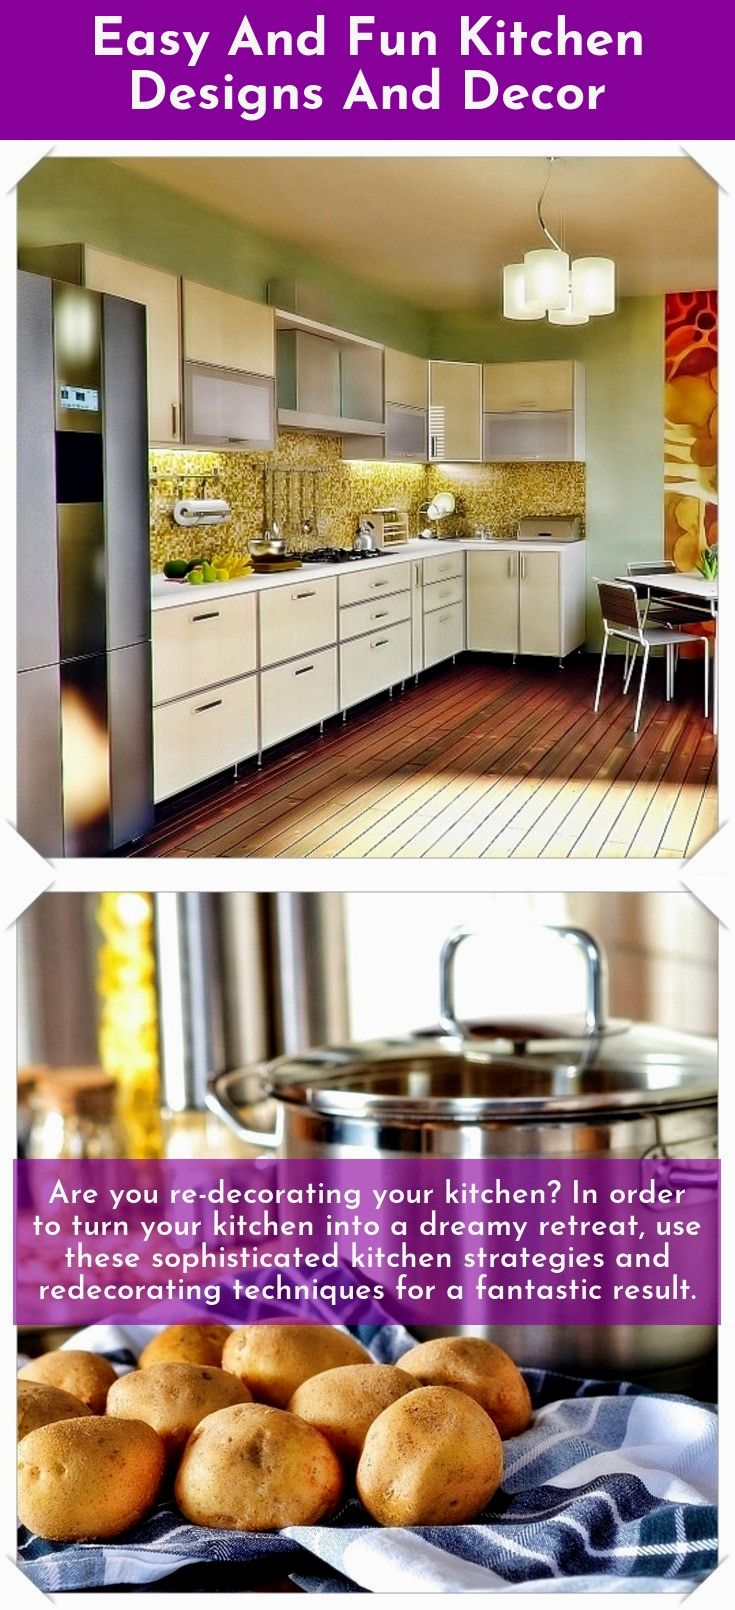 Easy and fun kitchen design and decor ideas are you redecorating